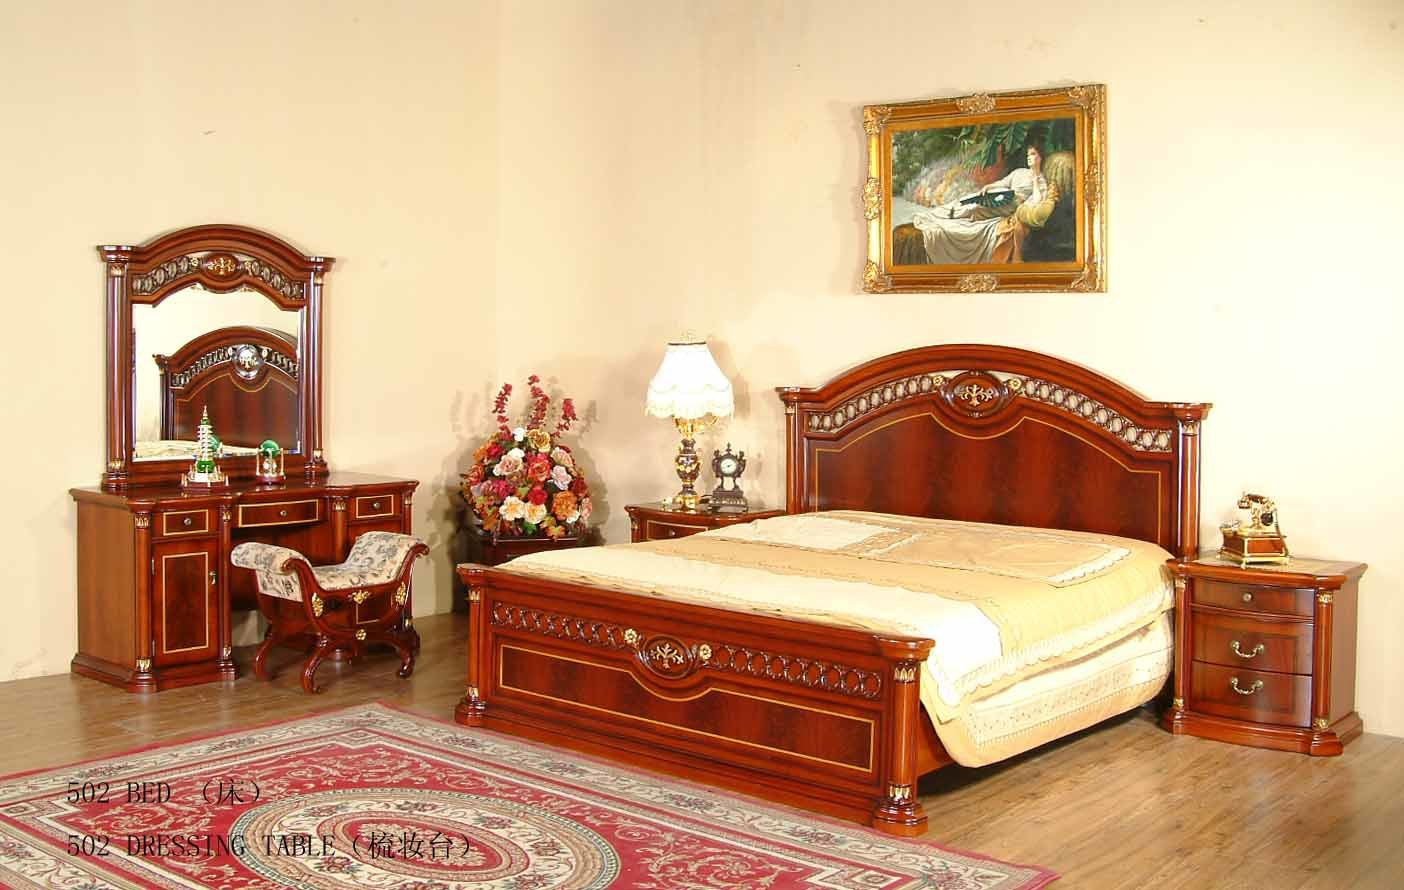 Very Best Bedroom Furniture / Bedroom Set (502) 1404 x 890 · 120 kB · jpeg